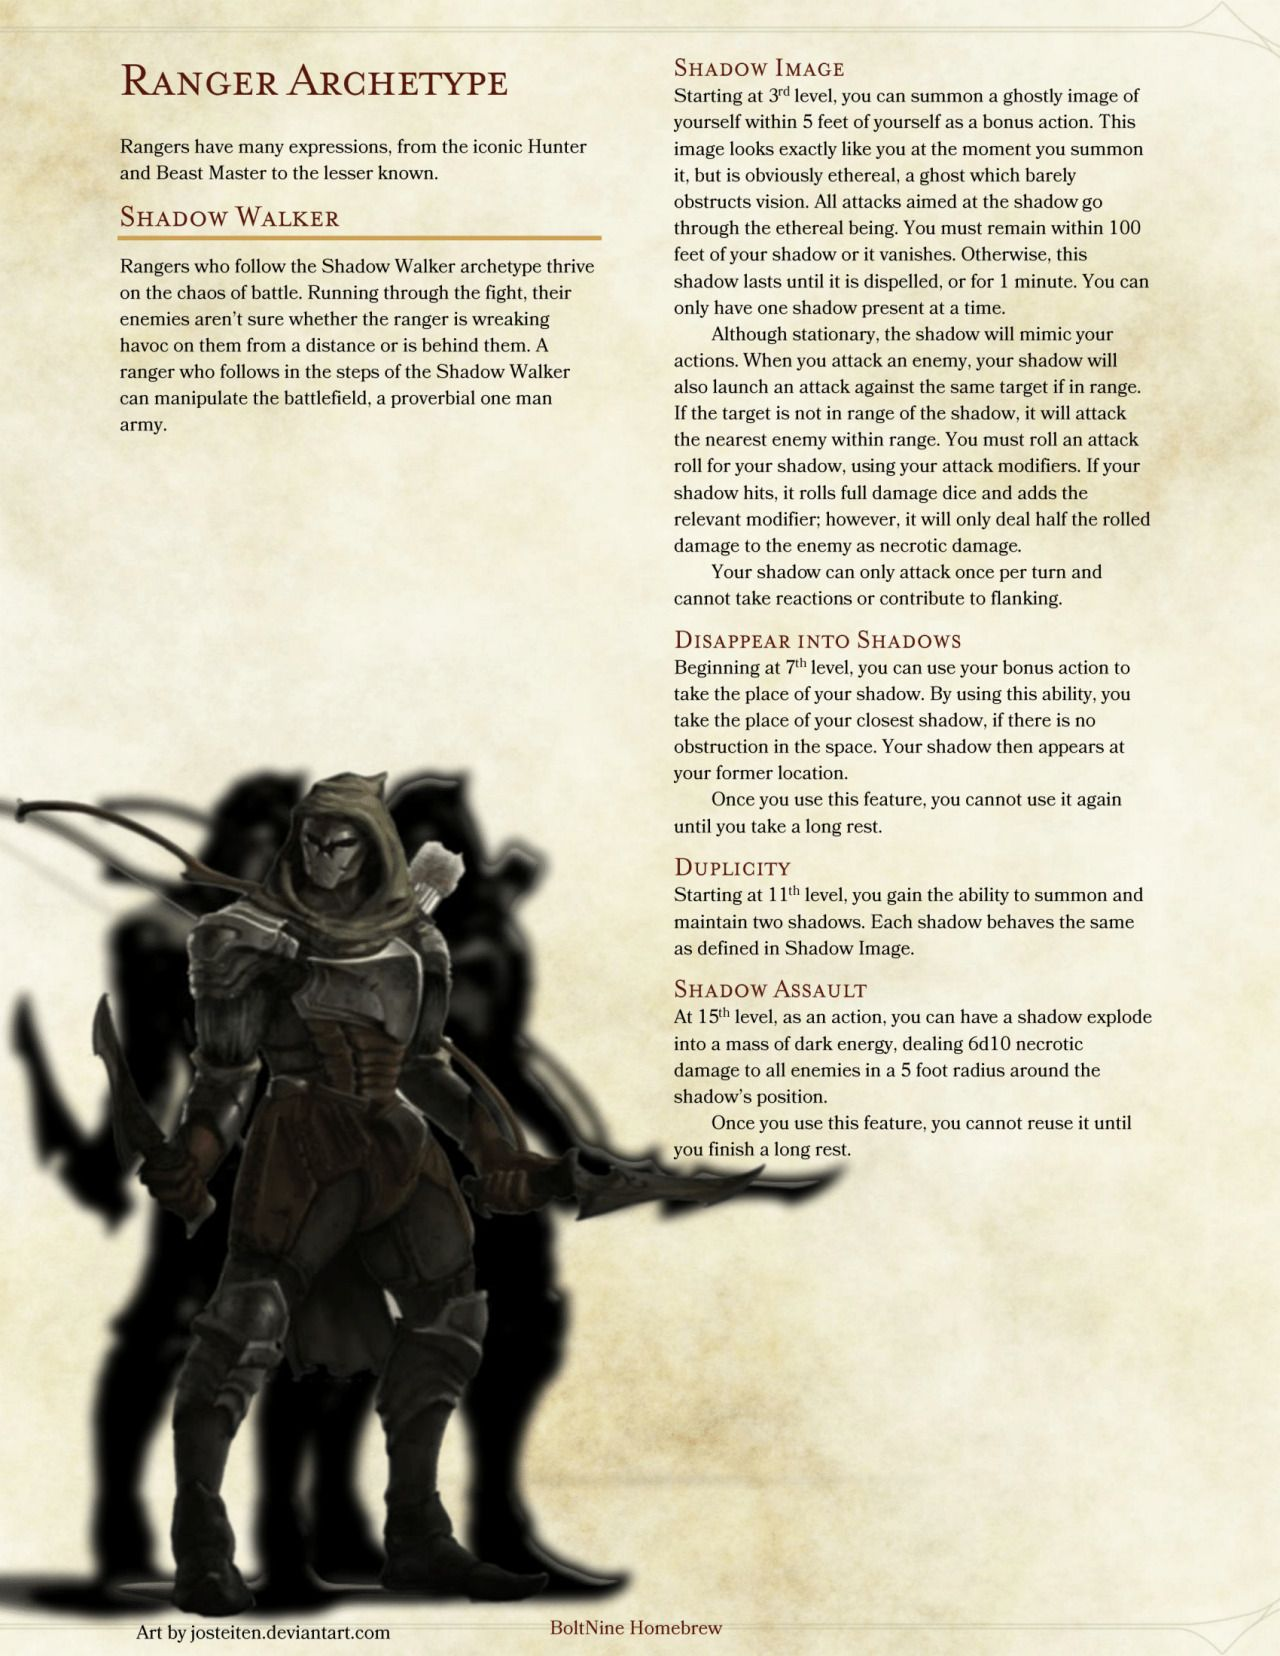 Pin by Warbossgibs on Ideas | Dnd 5e homebrew, Dnd classes, Dungeons